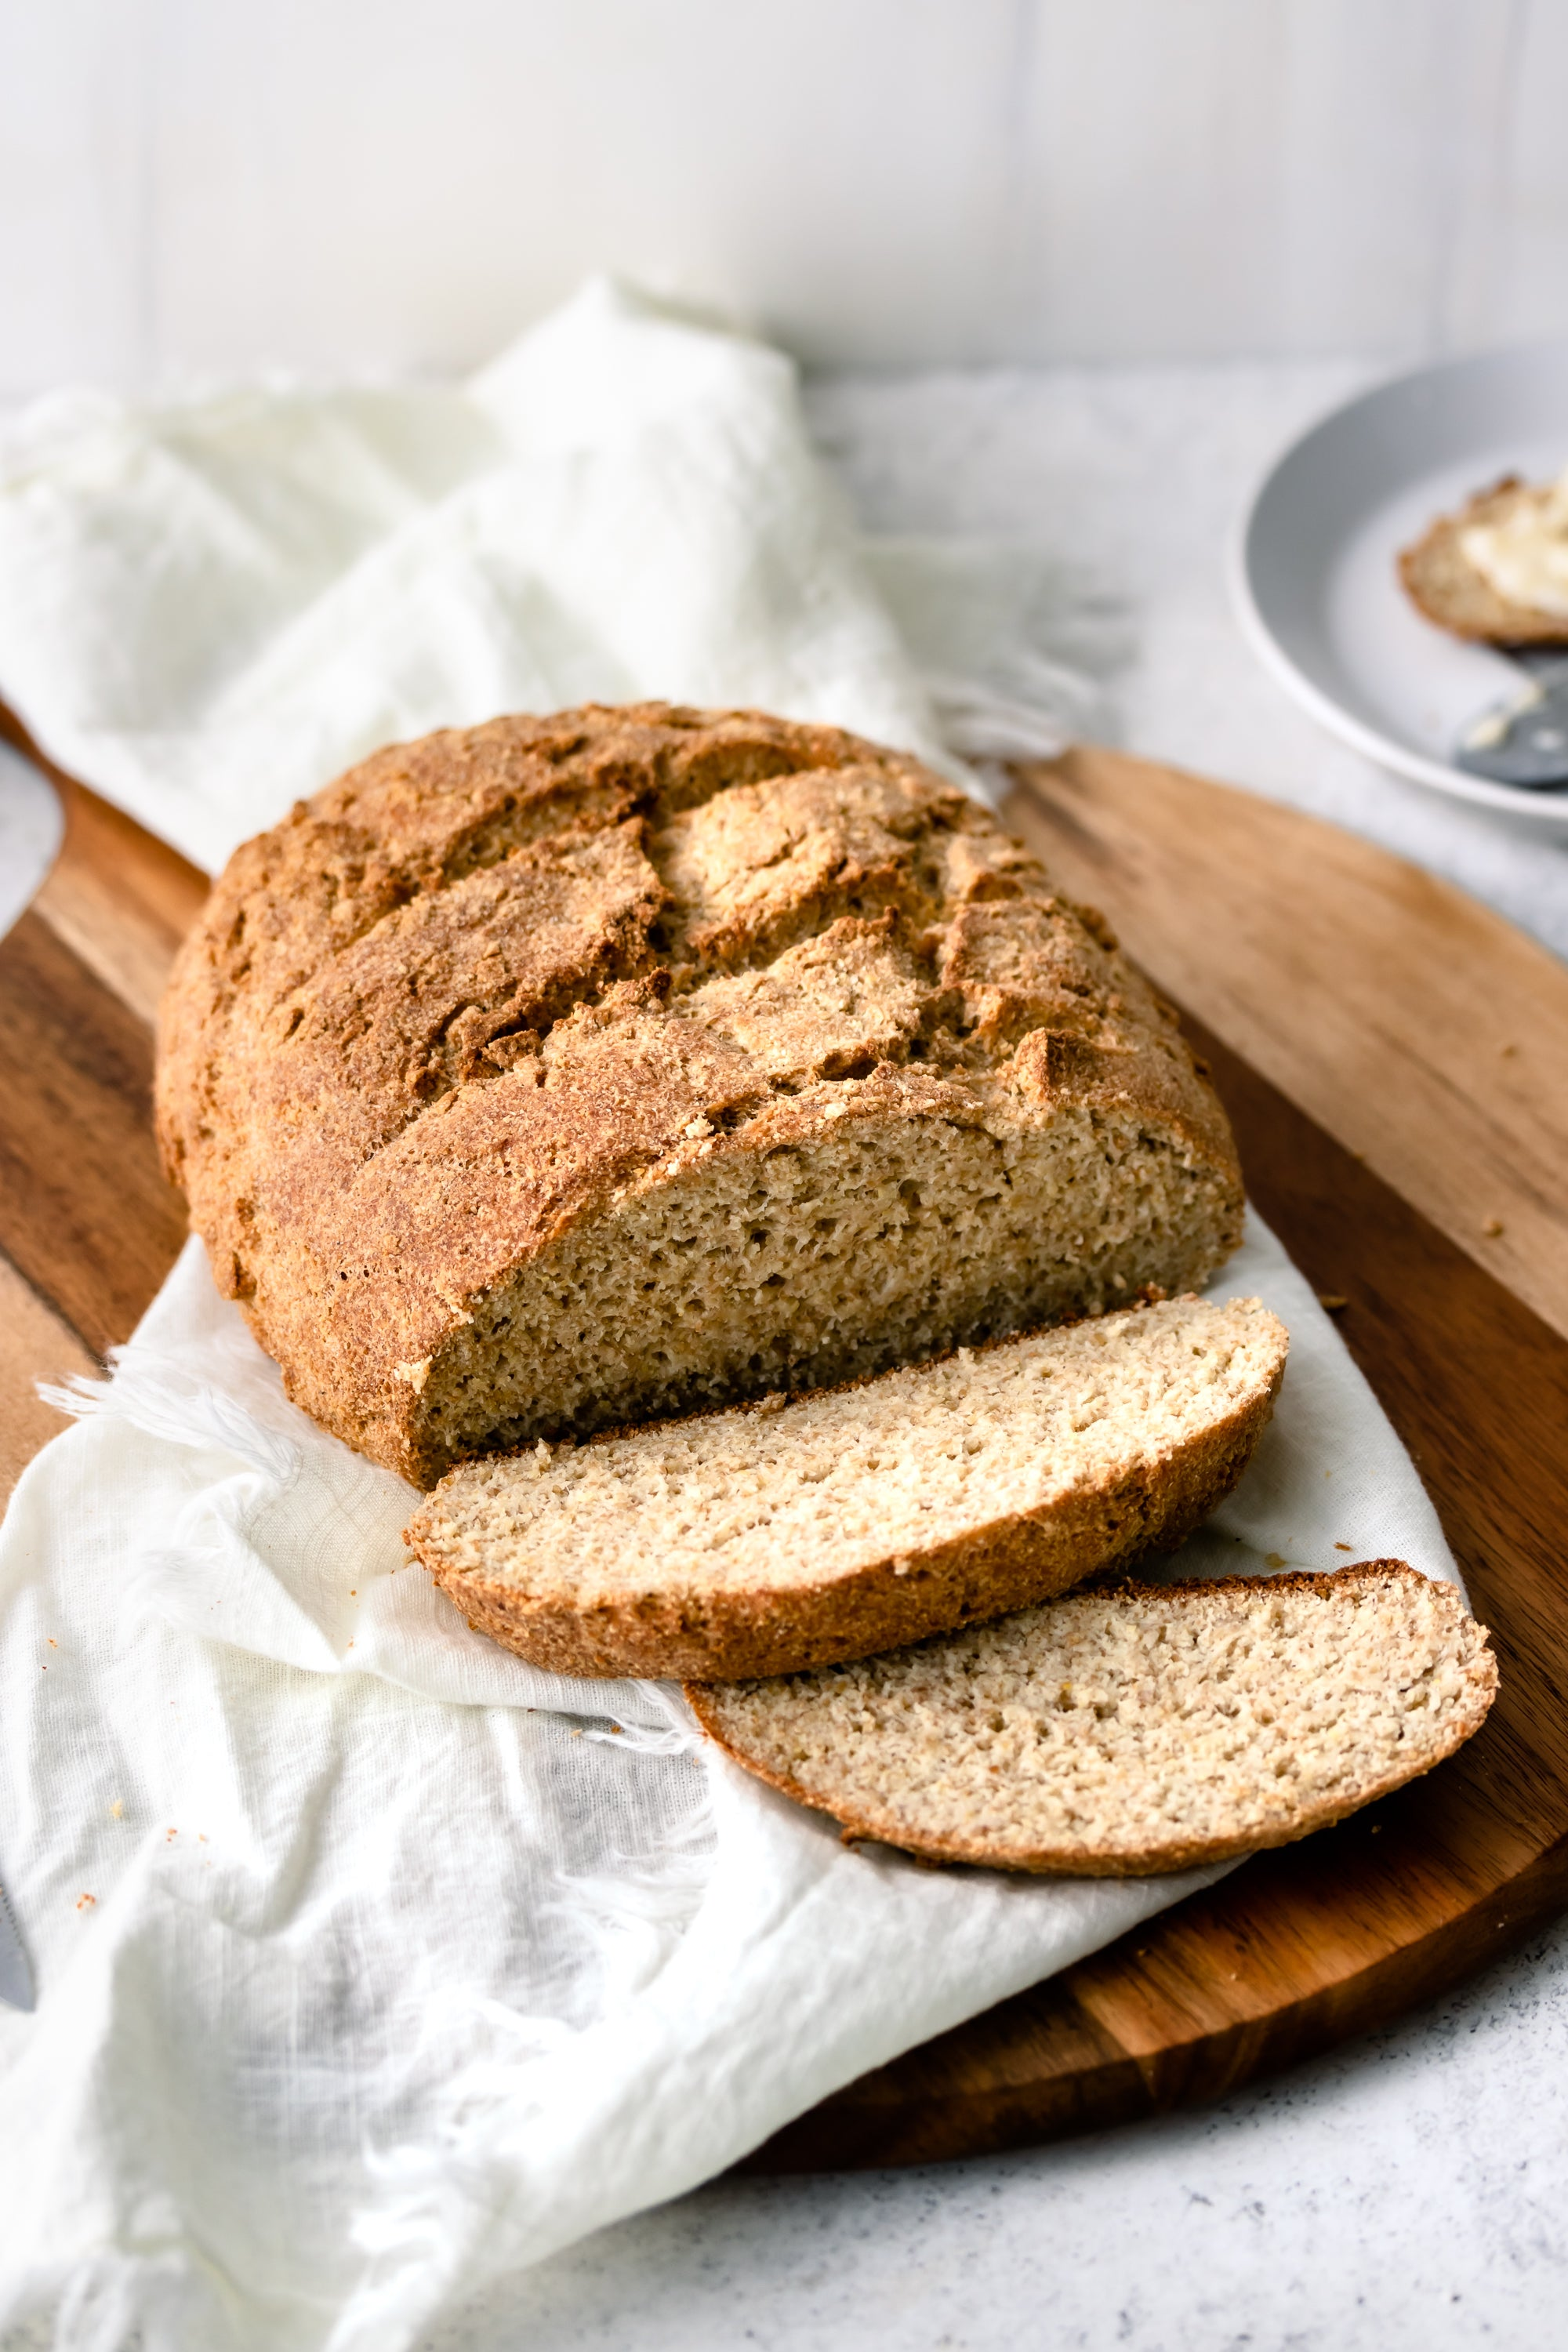 This easy-to-make keto approved bread is perfect not only for any dieter but, anyone gluten-free too!! TWO NET CARBS per serving